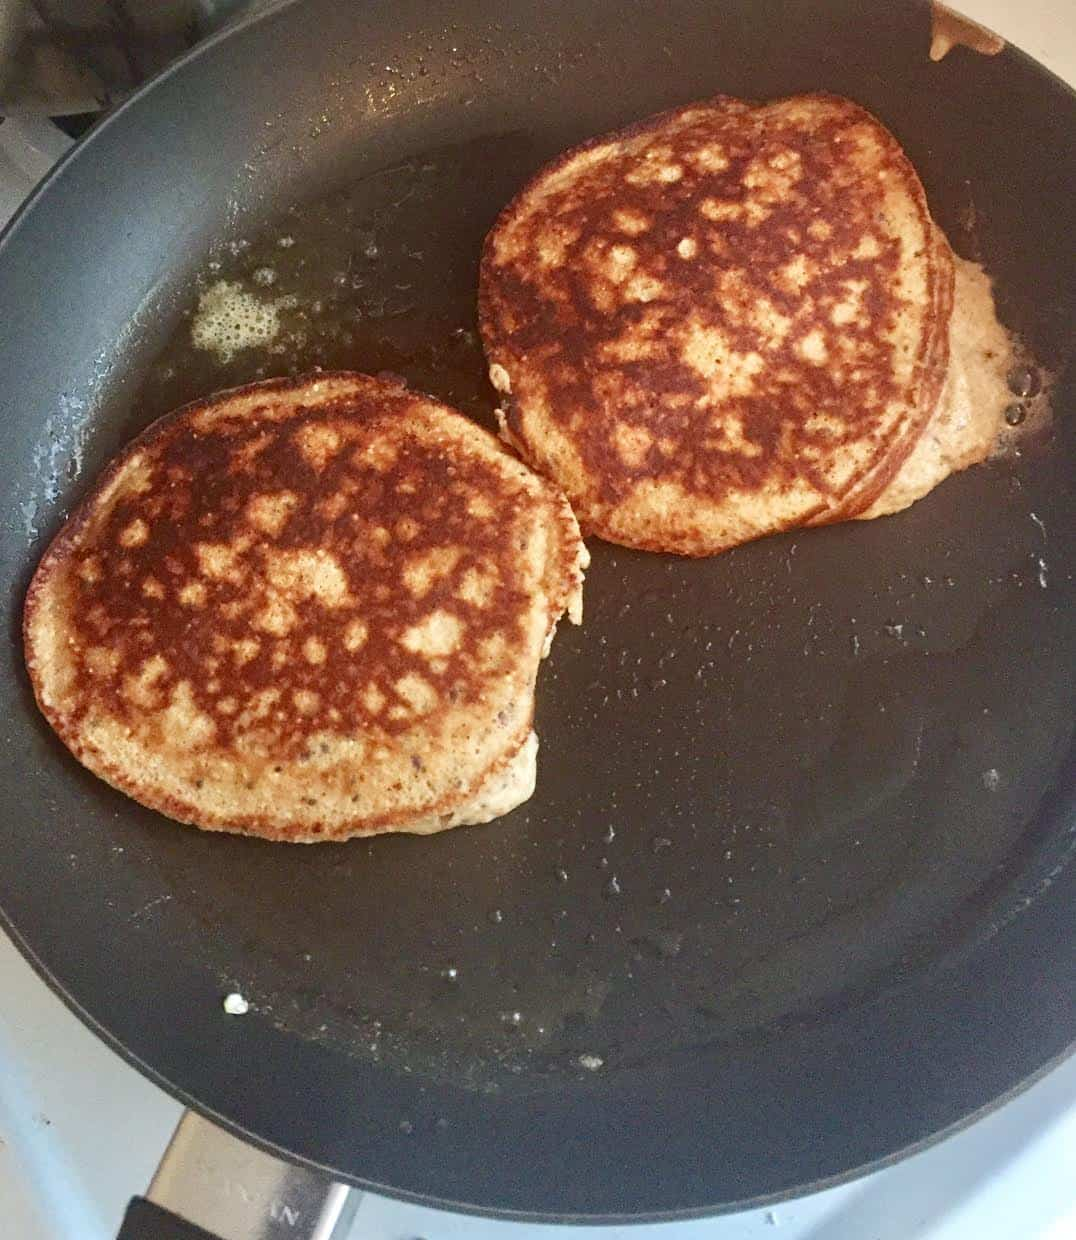 Healthy Recipe: Sugar Free Whole Grain Pancakes New Year's Brunch Doesn't Have To Derail Your Healthy Diet!